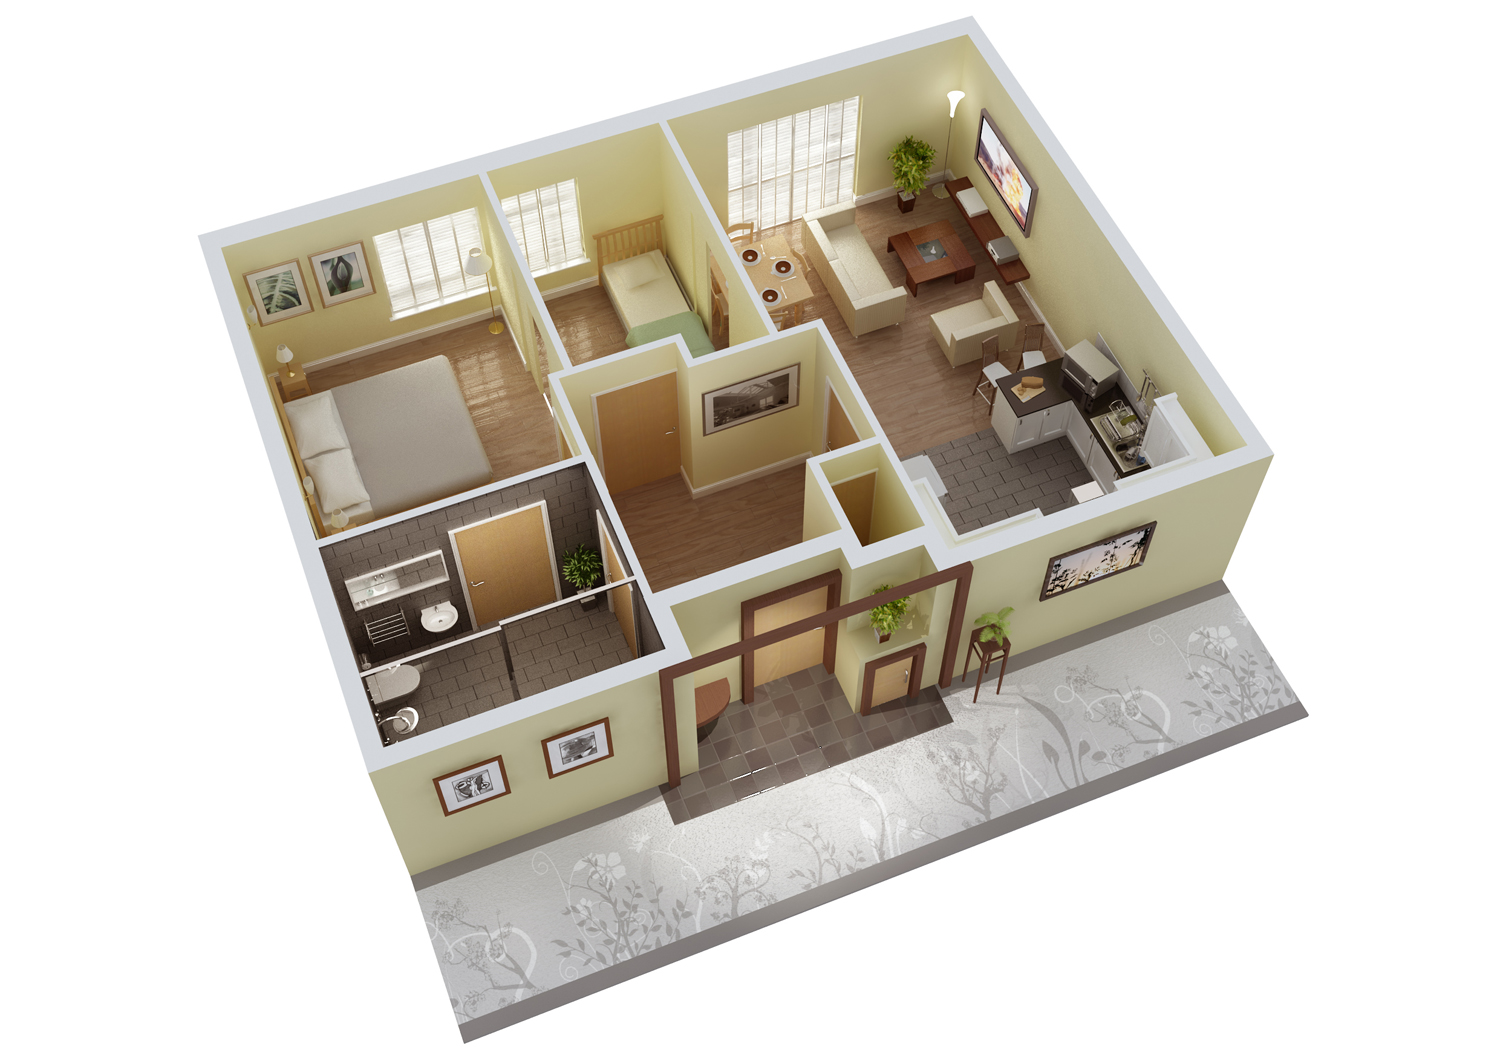 Mathematics Resources: Project: 3D Floor Plan